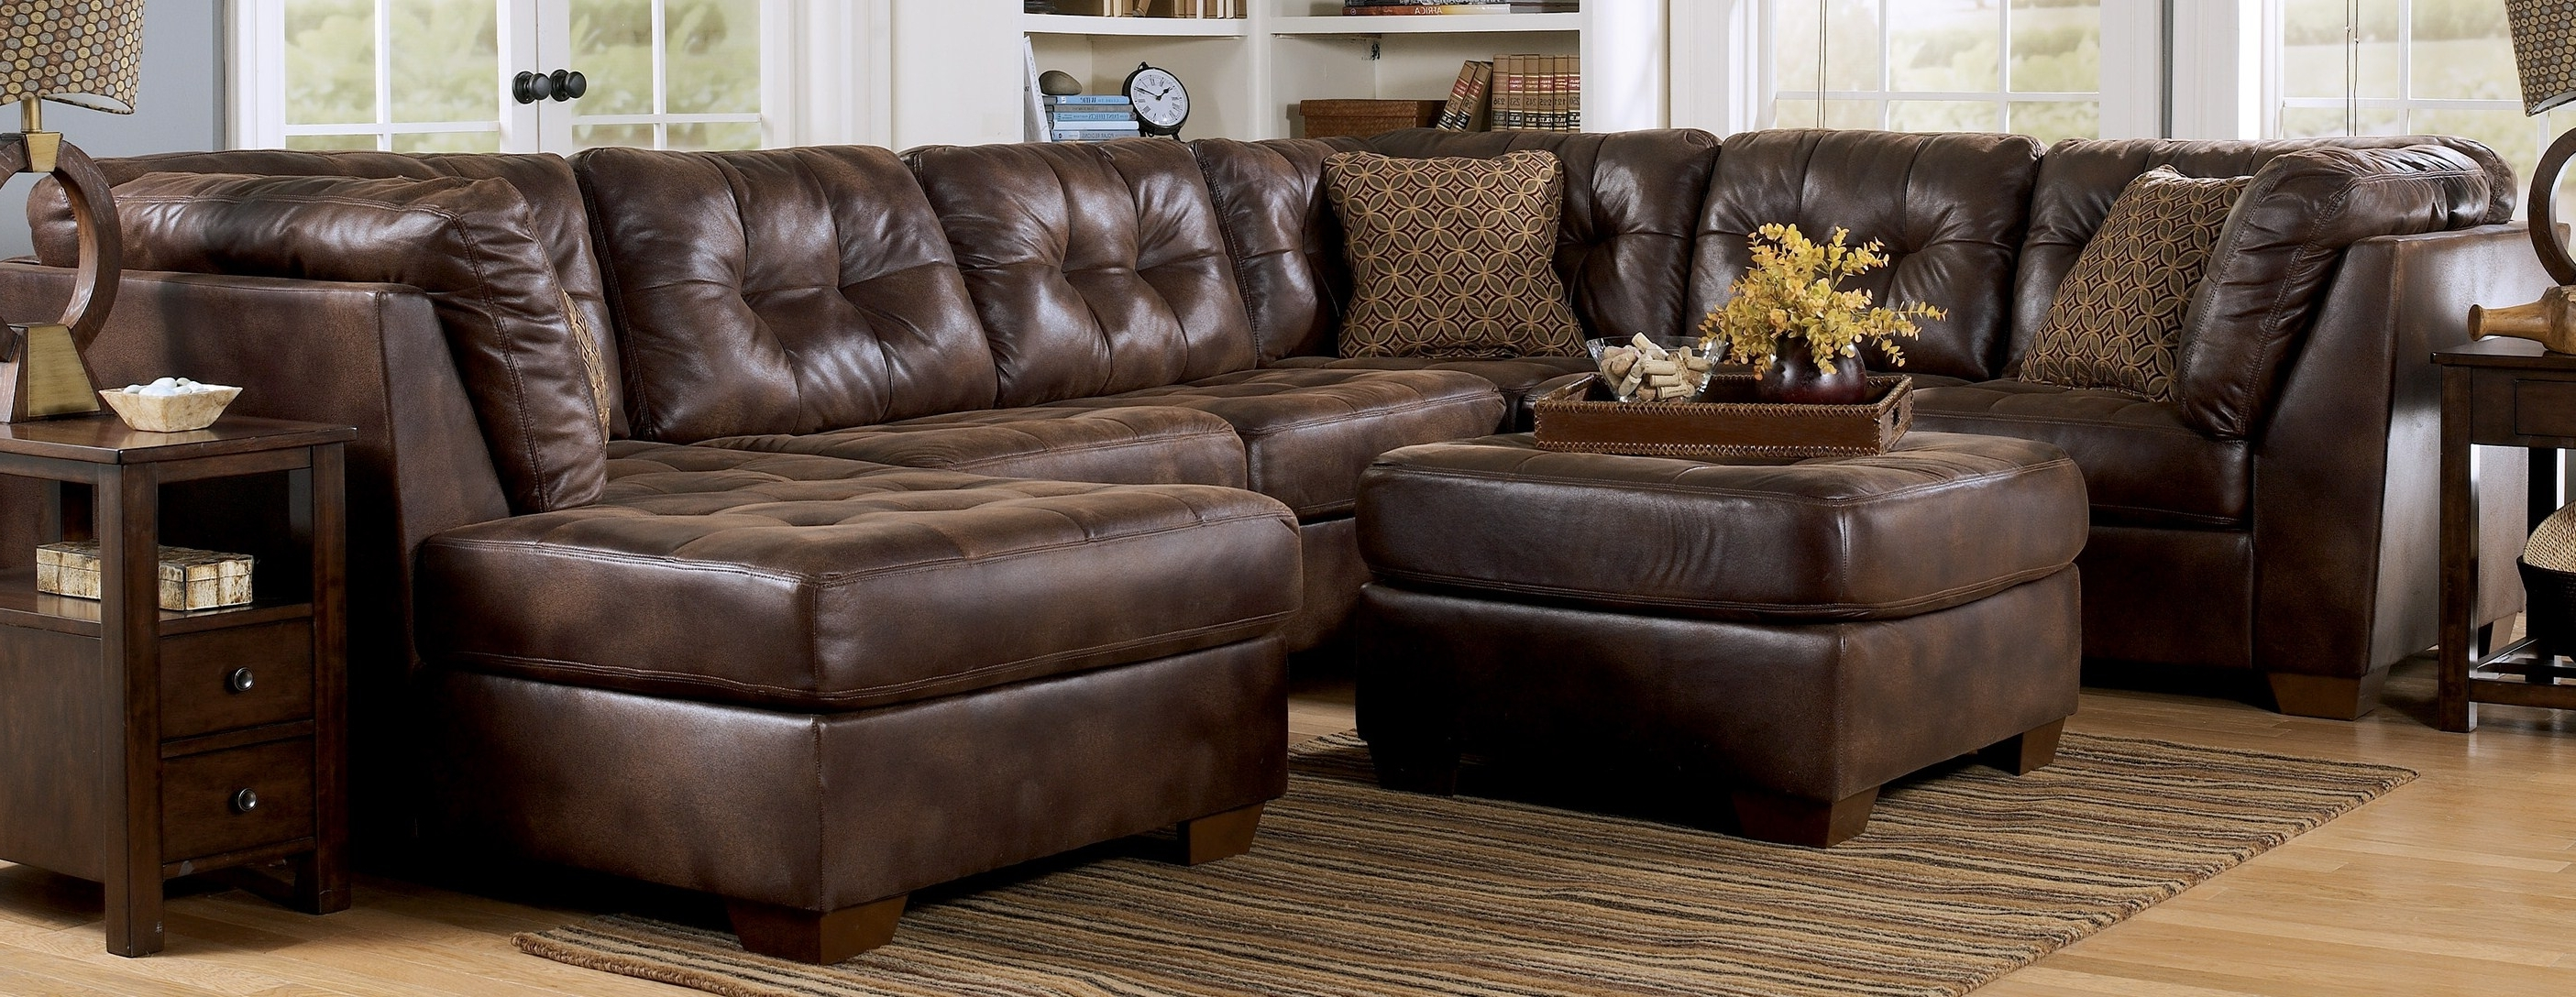 2017 Brown Leather Sectionals With Chaise Inside Big Lots Recliners Ashley Furniture Sectional Sofas Cheap (View 1 of 15)